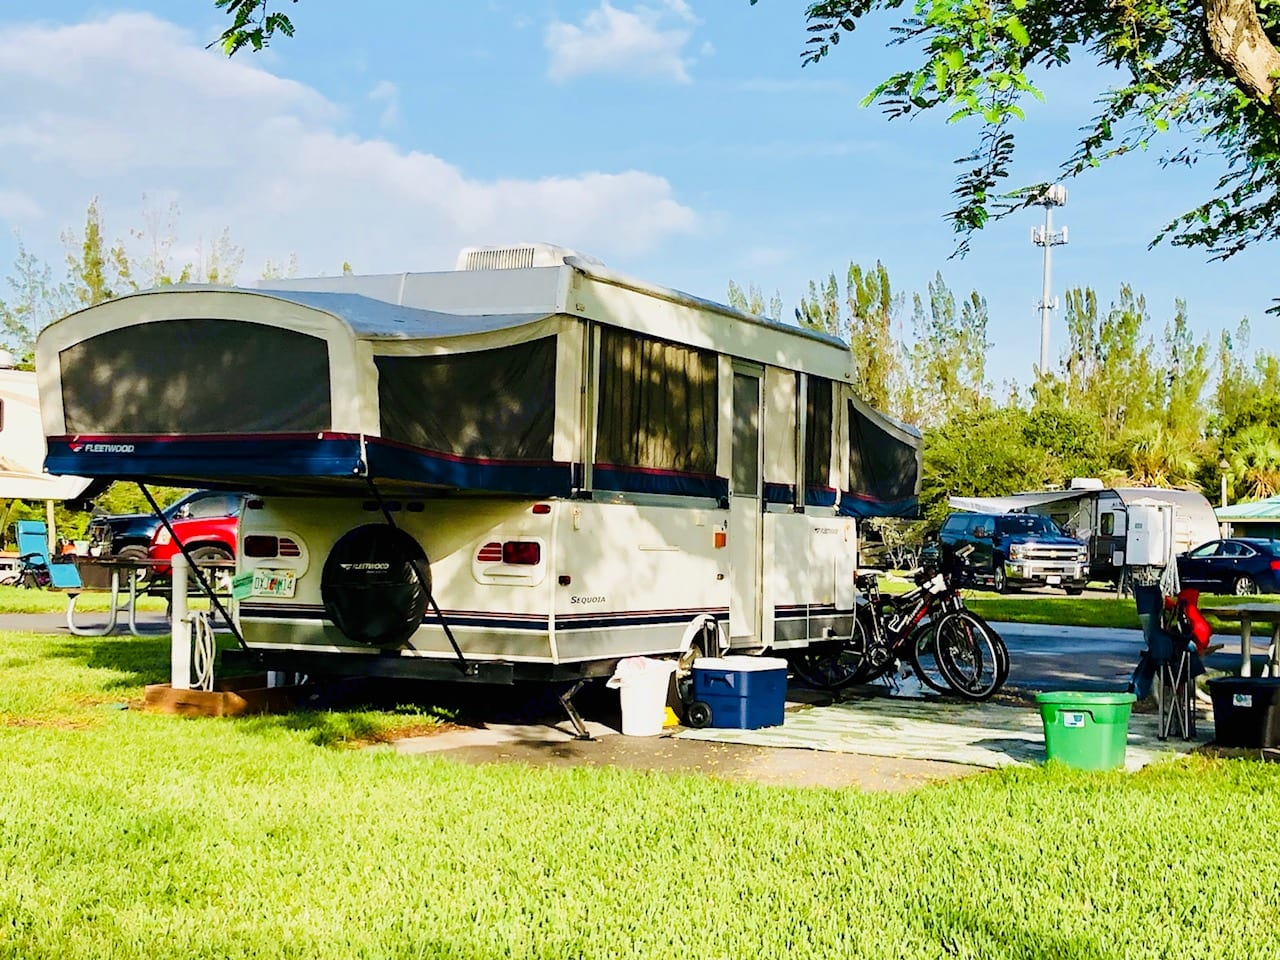 Enjoying a weekend getaway at C.B.Smith Campground in Broward County. Camper is kept extremely clean and we expect you to take good care of it. No smoking allowed inside.. Fleetwood Highlander Sequoia